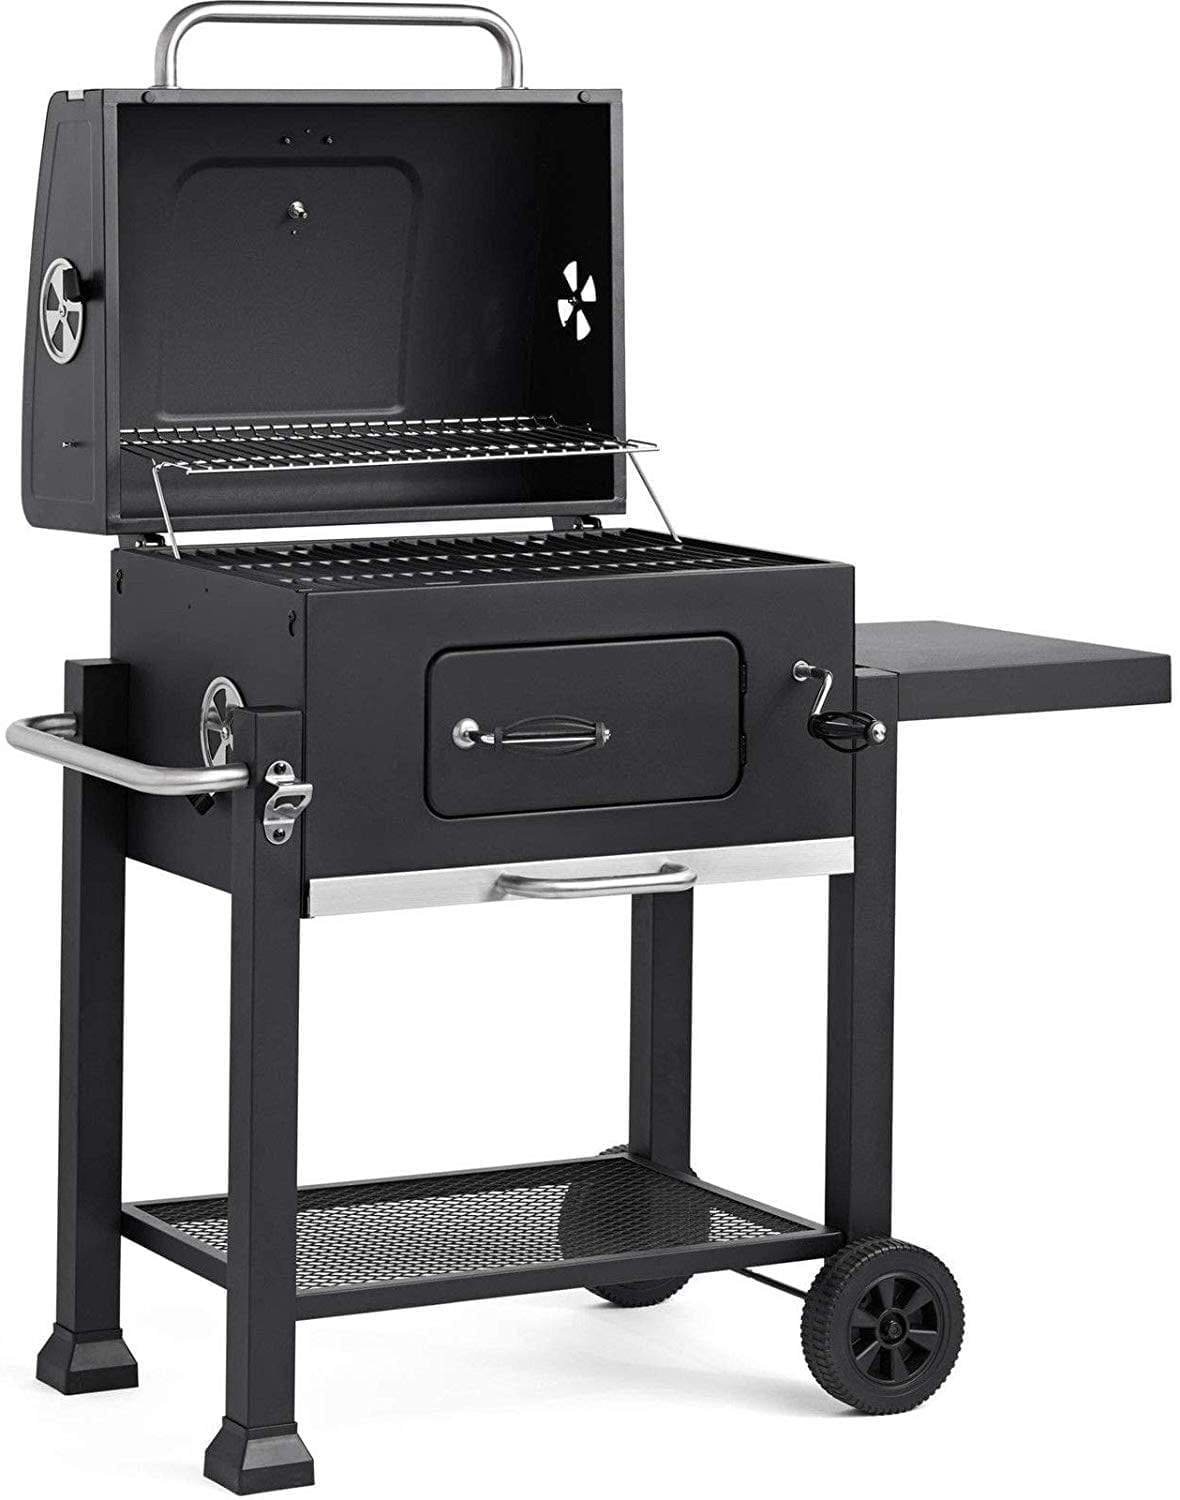 Expert Grill 24-Inch Charcoal Grill